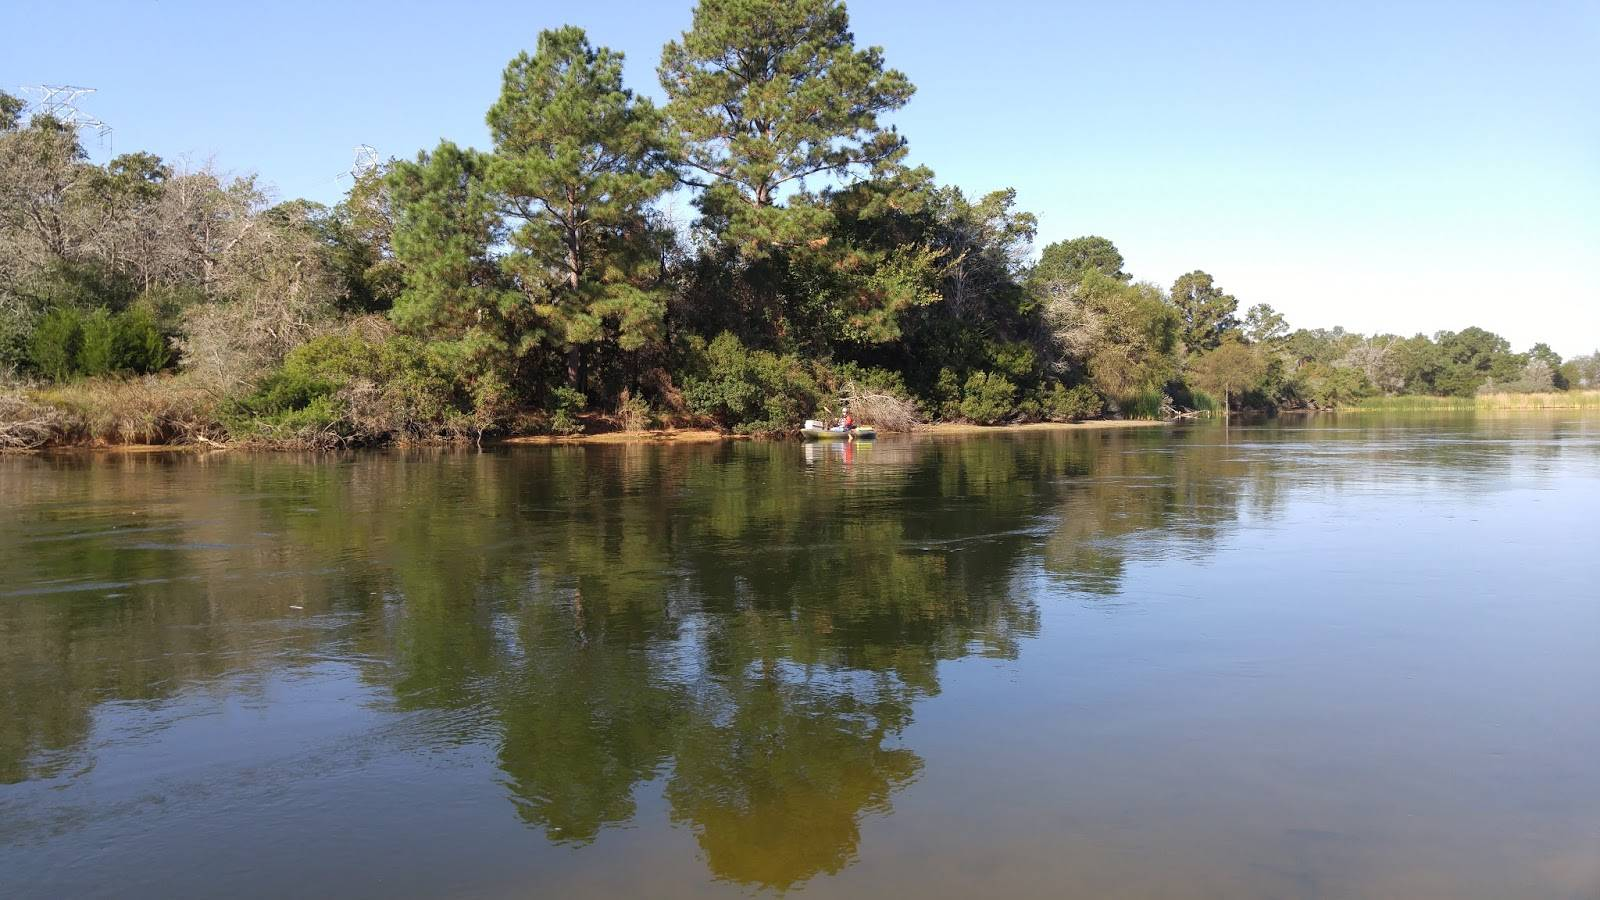 Kayak Fishing Lake Bastrop on a beautiful day with calm water